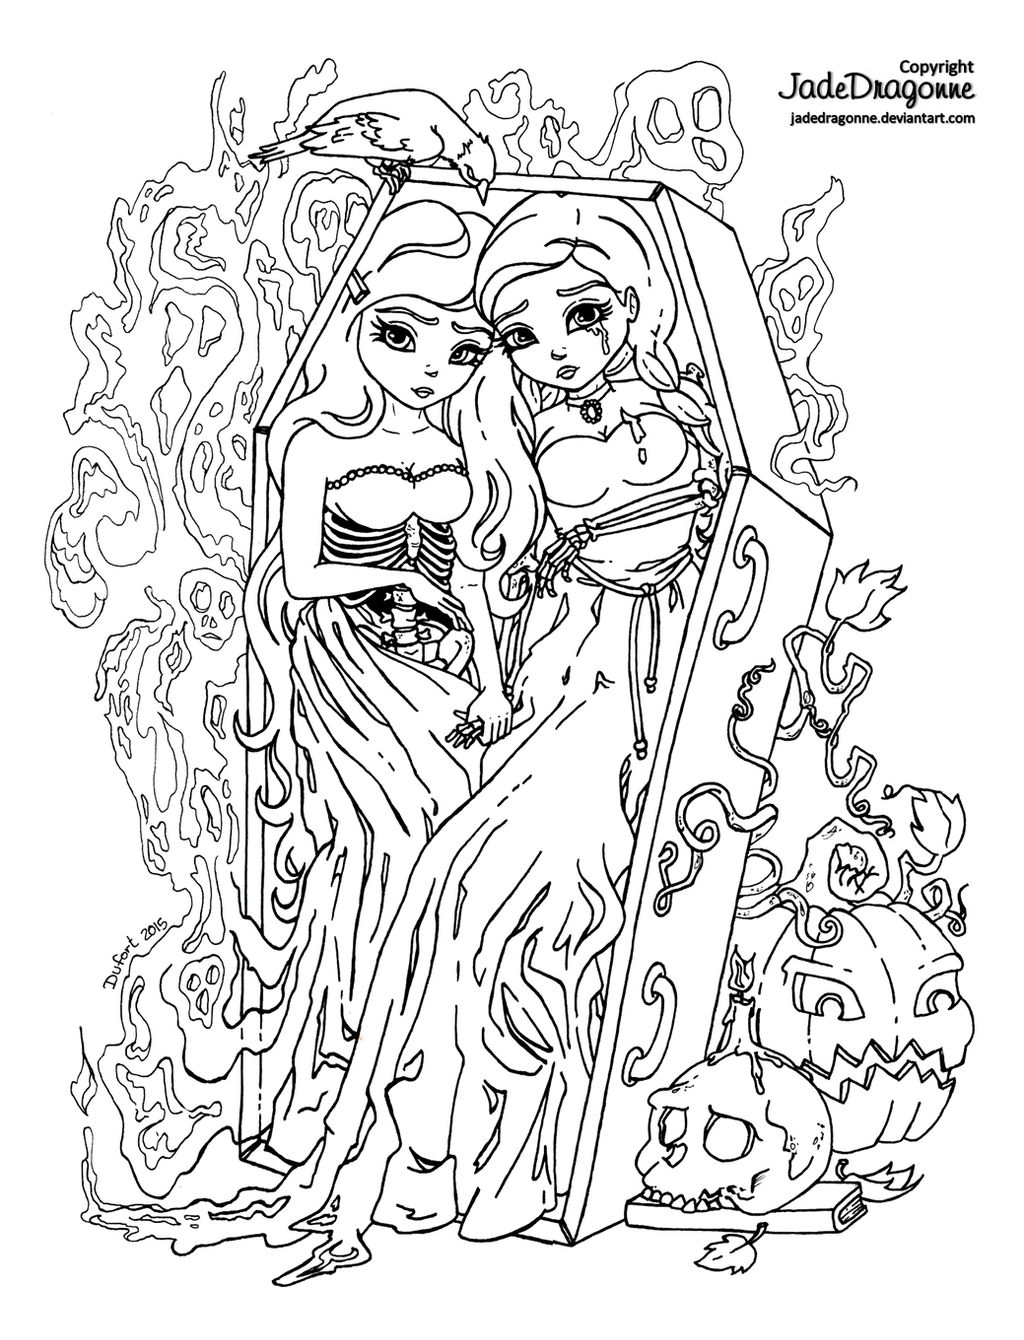 Coloring pages for halloween coloring contest -  The Twins 2015 Halloween Coloring Contest By Jadedragonne